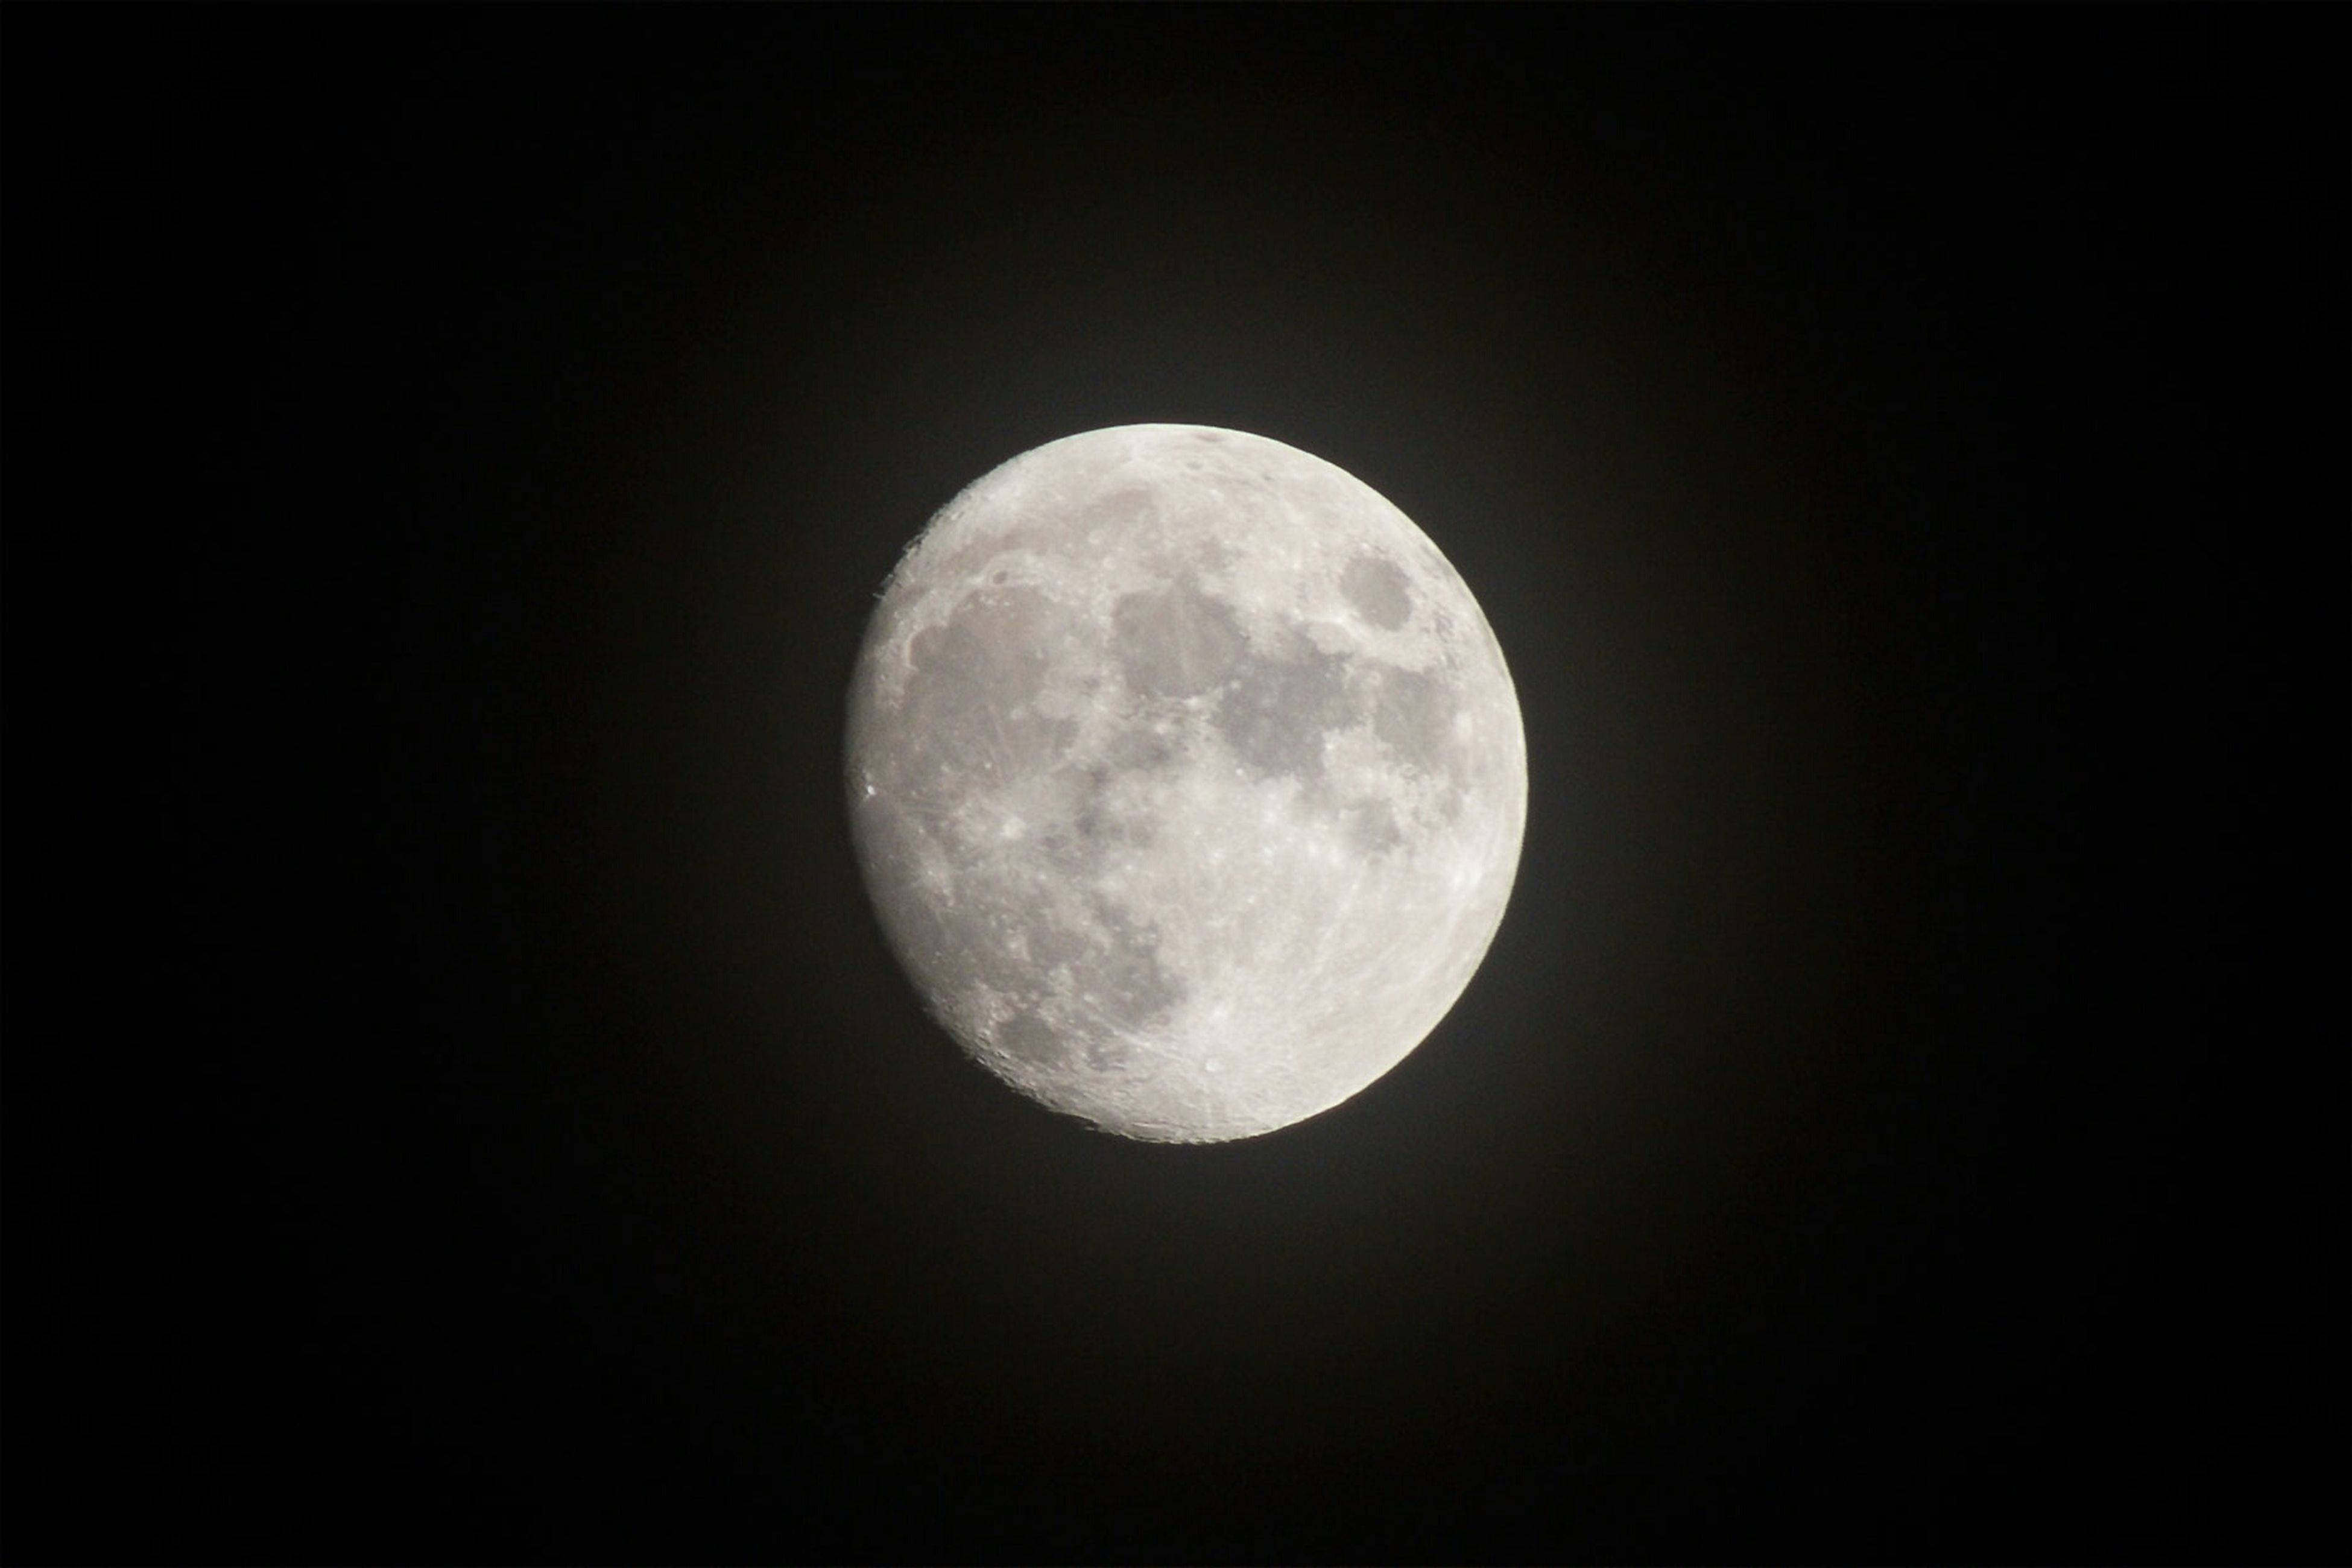 moon, astronomy, full moon, planetary moon, night, moon surface, beauty in nature, circle, tranquil scene, scenics, sphere, tranquility, discovery, space exploration, nature, low angle view, sky, majestic, copy space, idyllic